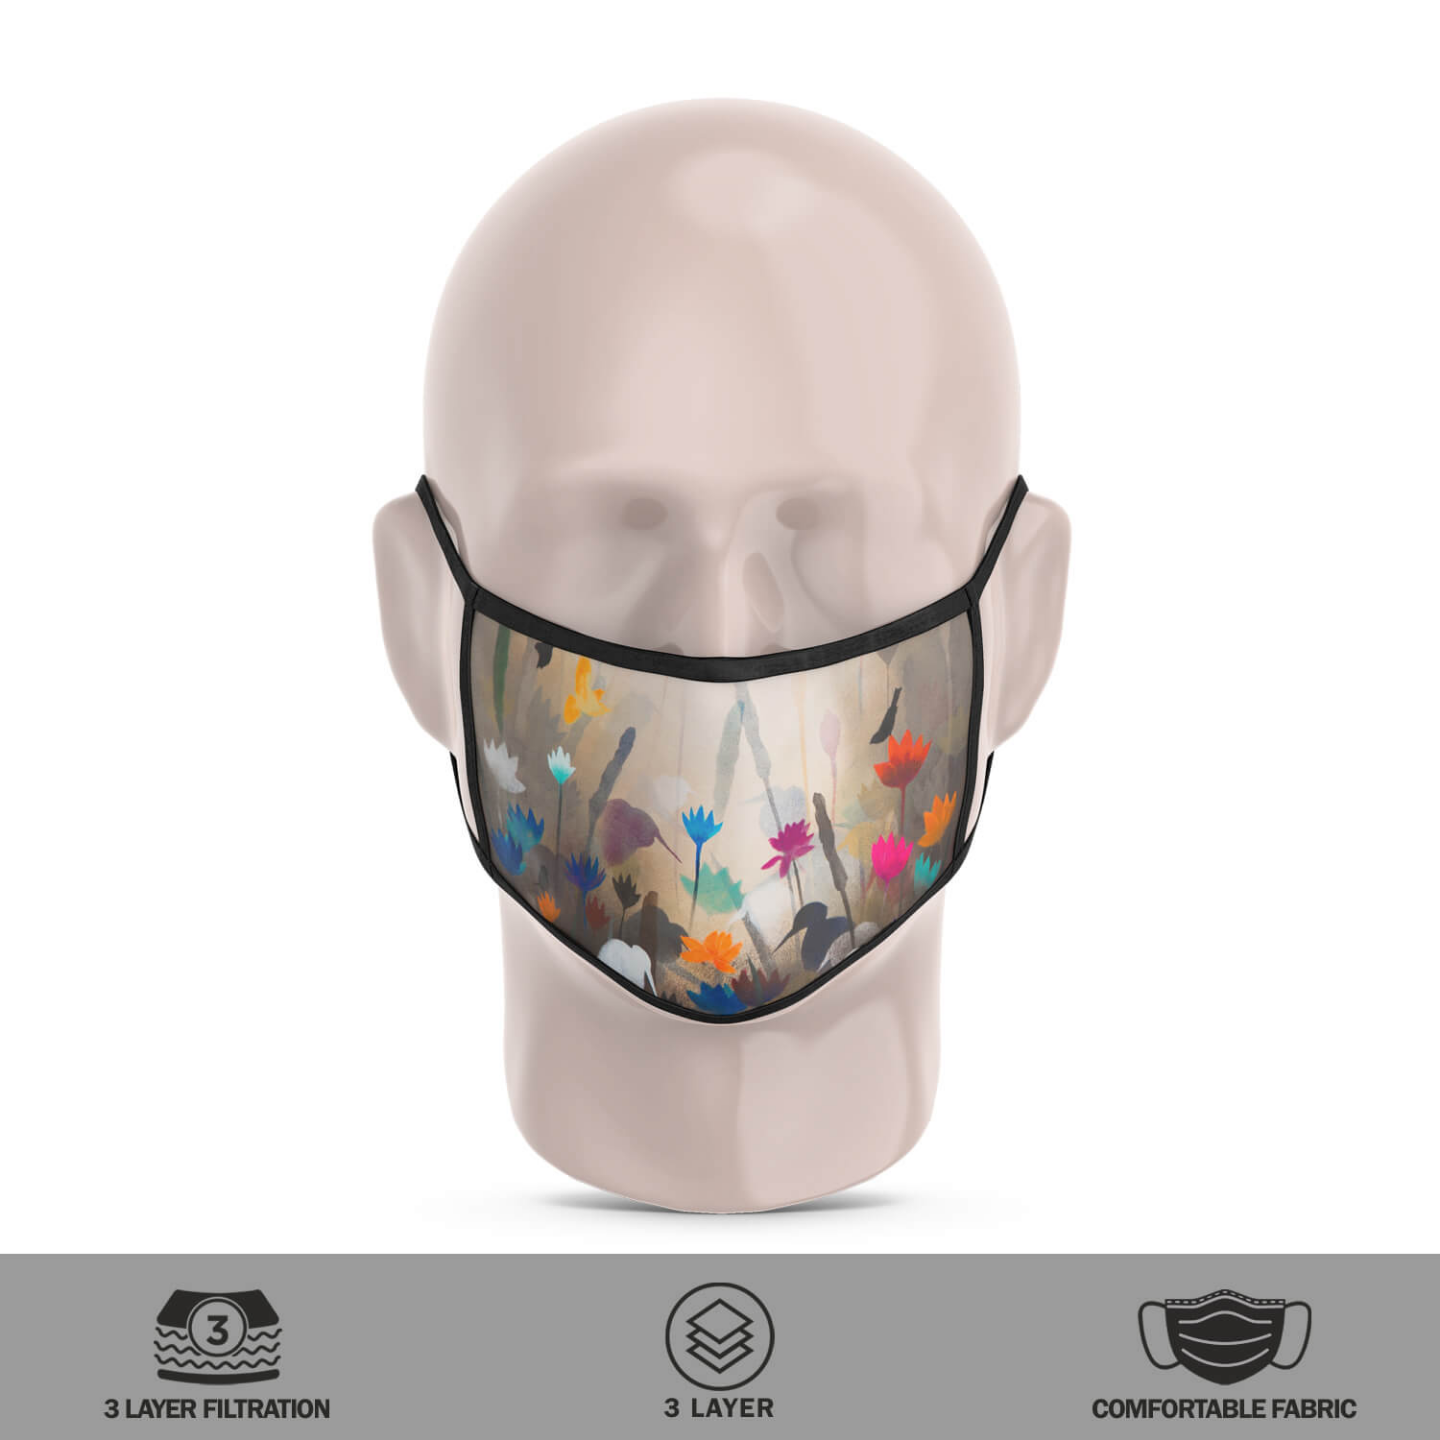 Song from Flower Reusable Face Mask - Priyanka Waghela